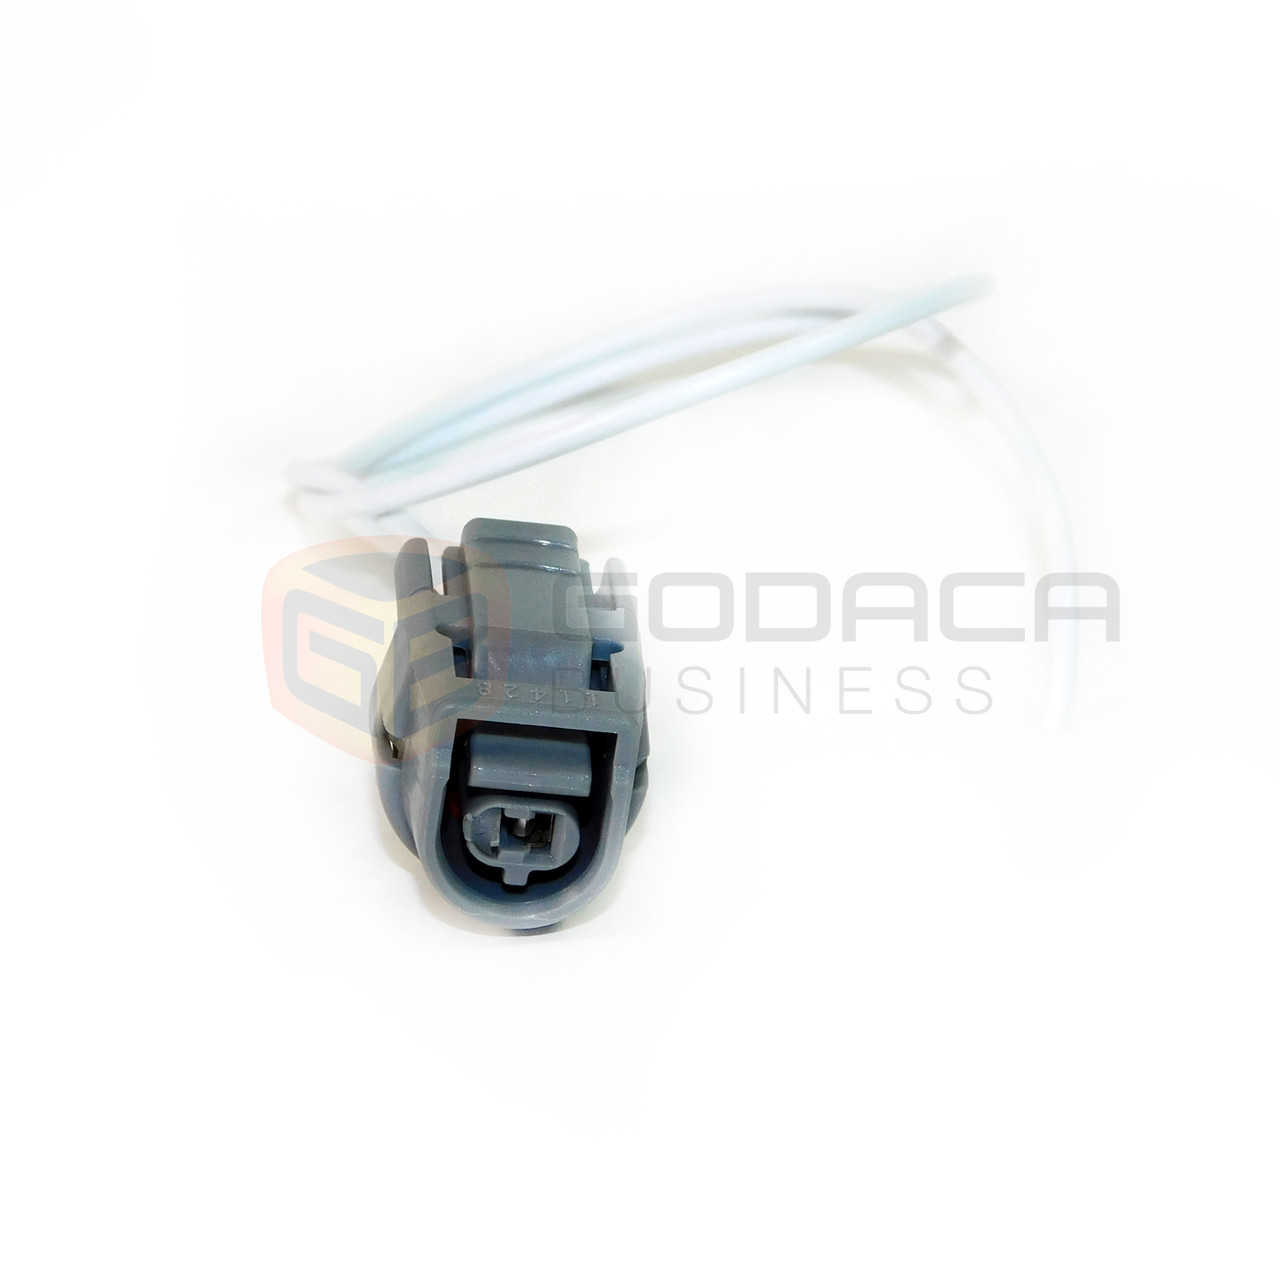 hight resolution of 1x connector temperature sensor for toyota 2jz 90980 11428 with wire godaca llc